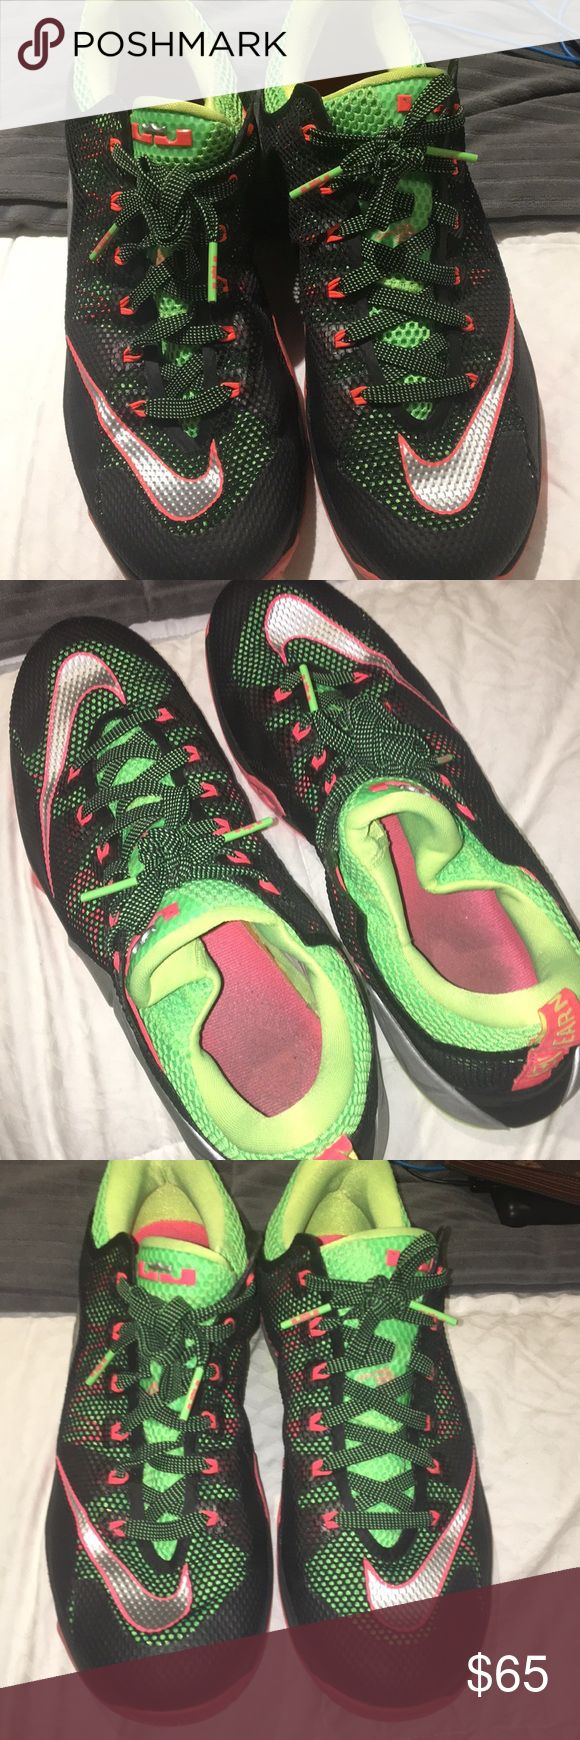 Lebron Men's basketball shoes Great condition! Men's basketball Lebron shoes size 11, Worn a 3-4 times, selling because it's not the right size but amazing shoe!! Nike Shoes Athletic Shoes